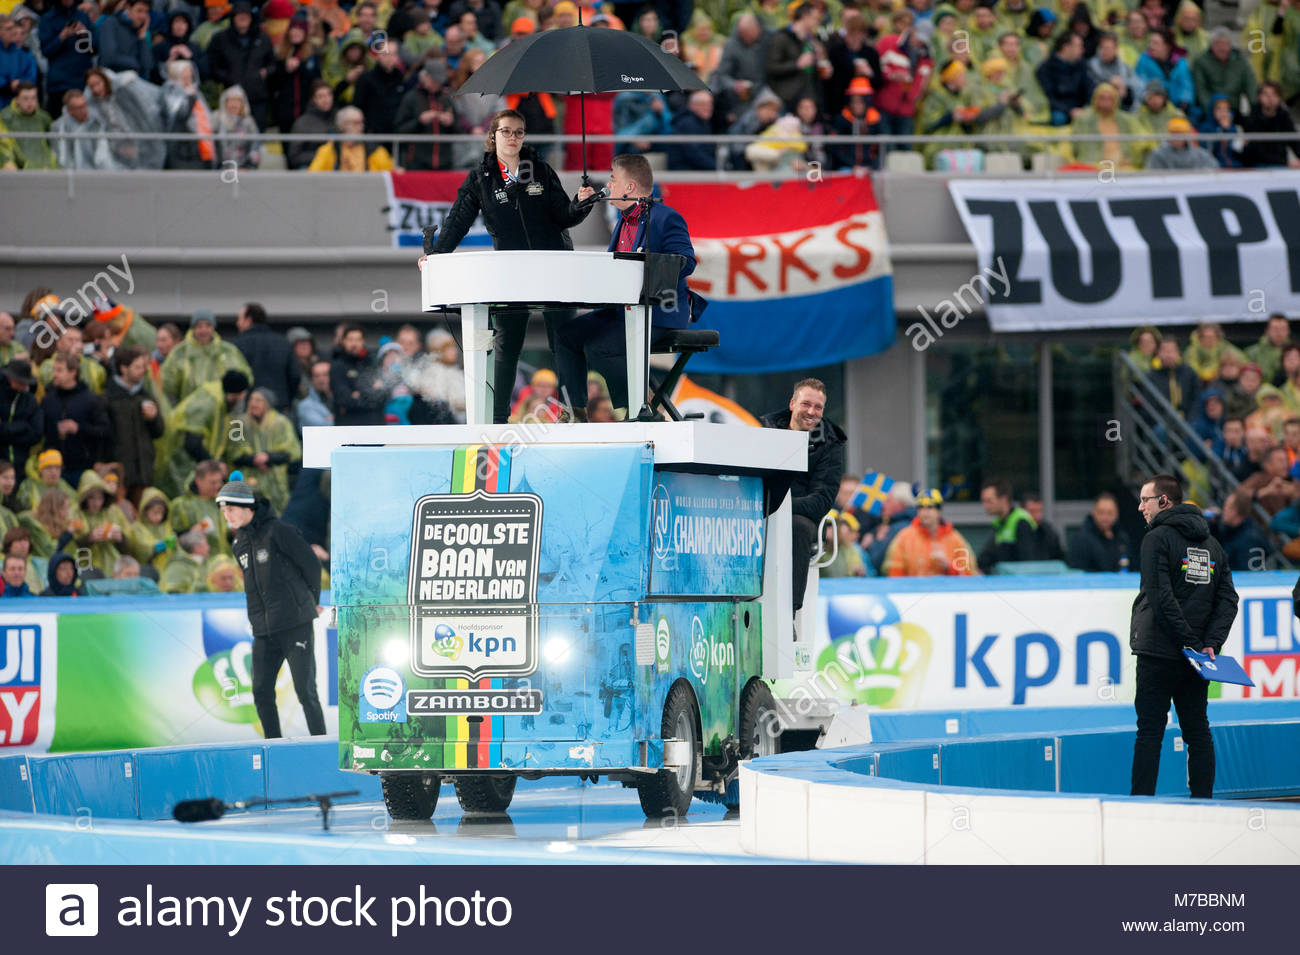 Amsterdam The Netherlands 10th March 2018  World championships allround speed skating.  Womens 1500m  Surreal moment. Stock Photo